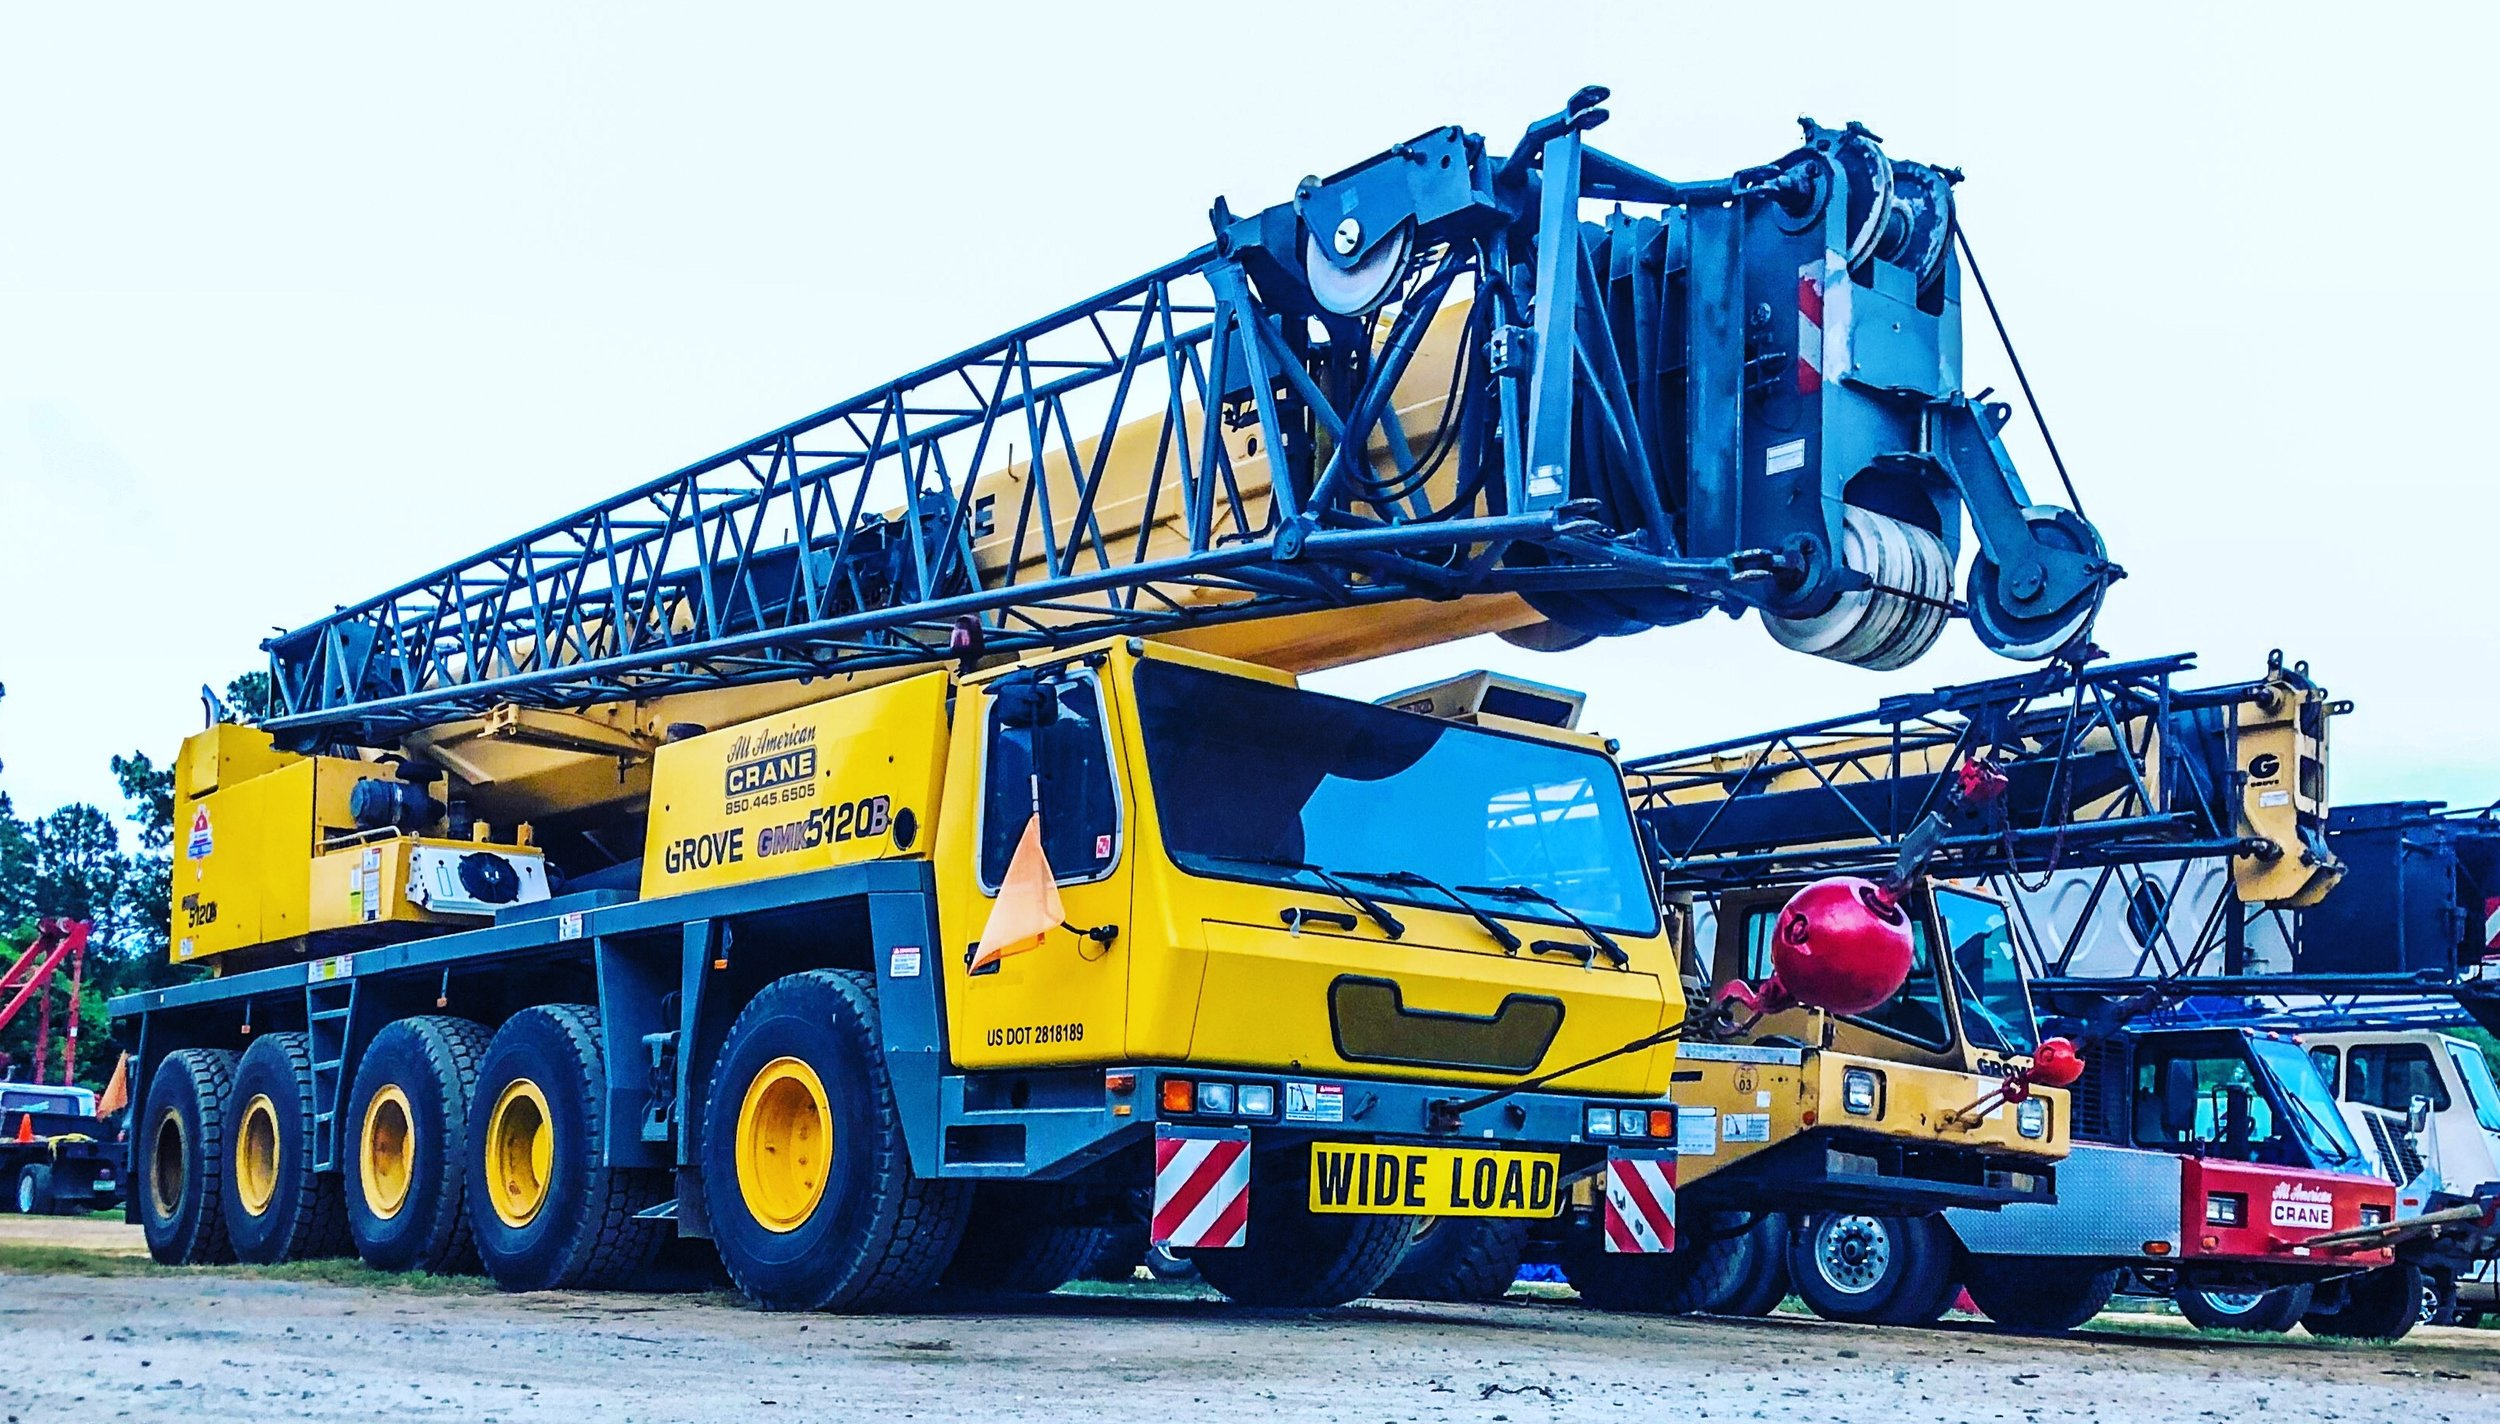 Crane Grove 5120 parked in shop yard cropped.jpg